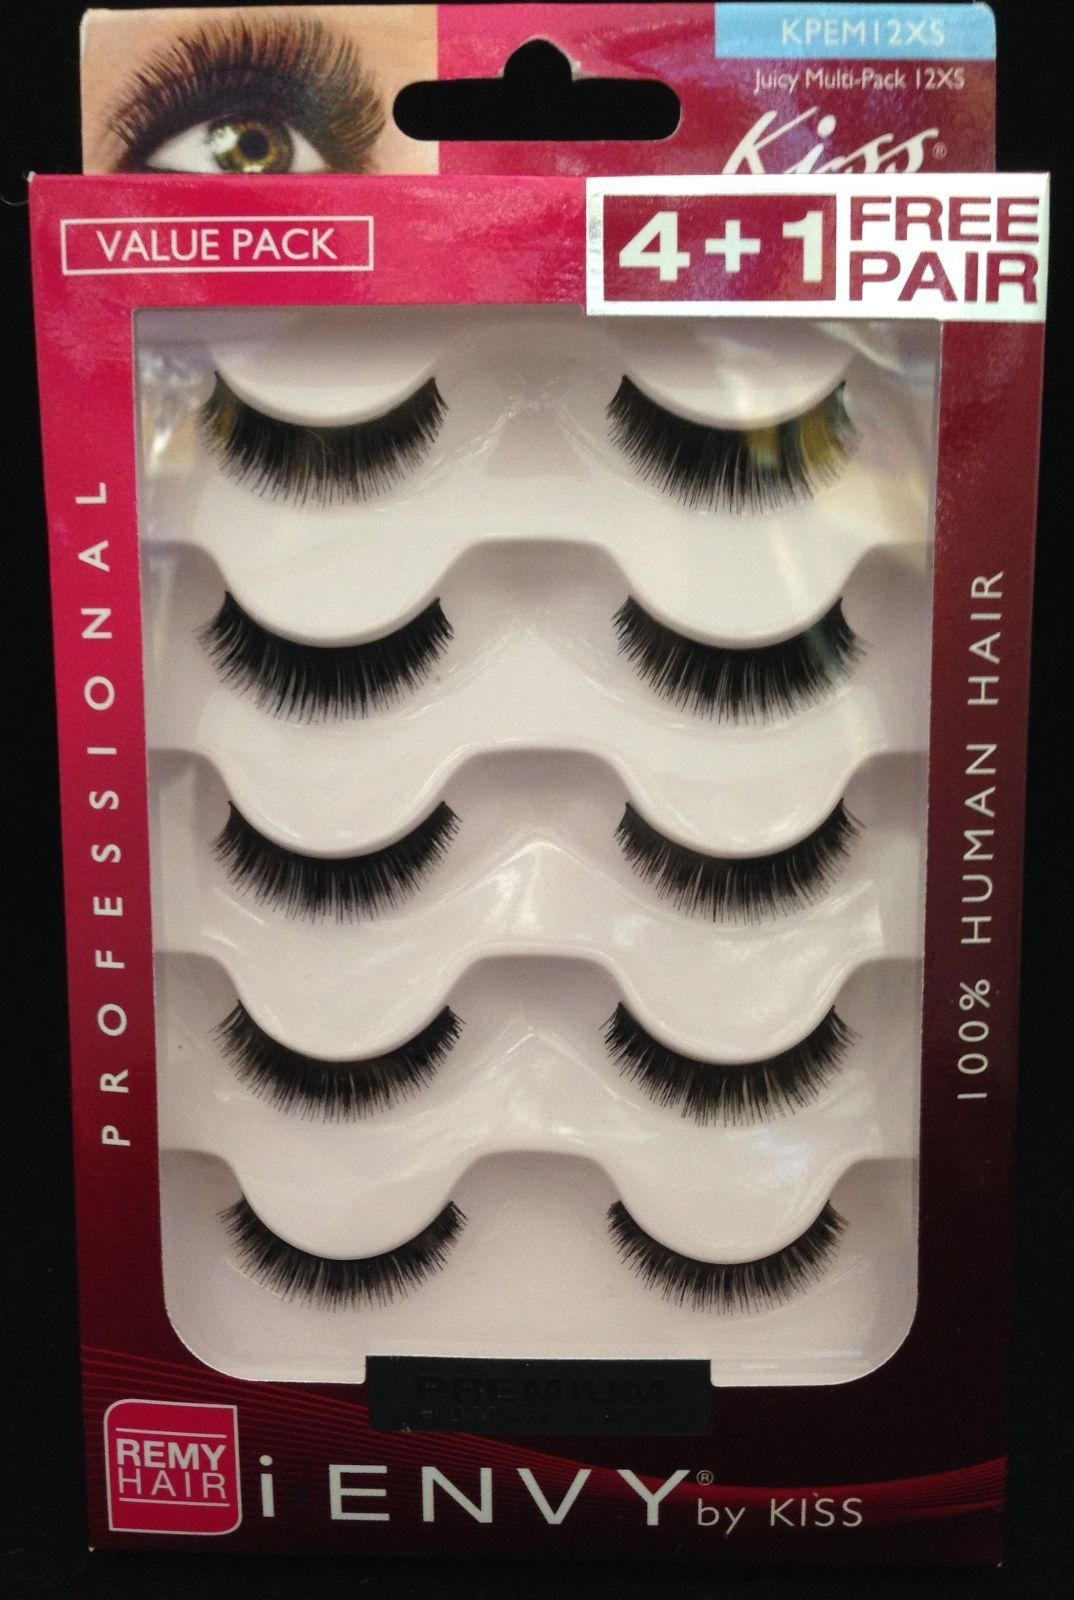 Primary image for I ENVY BY KISS EYELASHES JUICY MULTI PACK 12XS KPEM12XS VALUE PACK EYELASHES